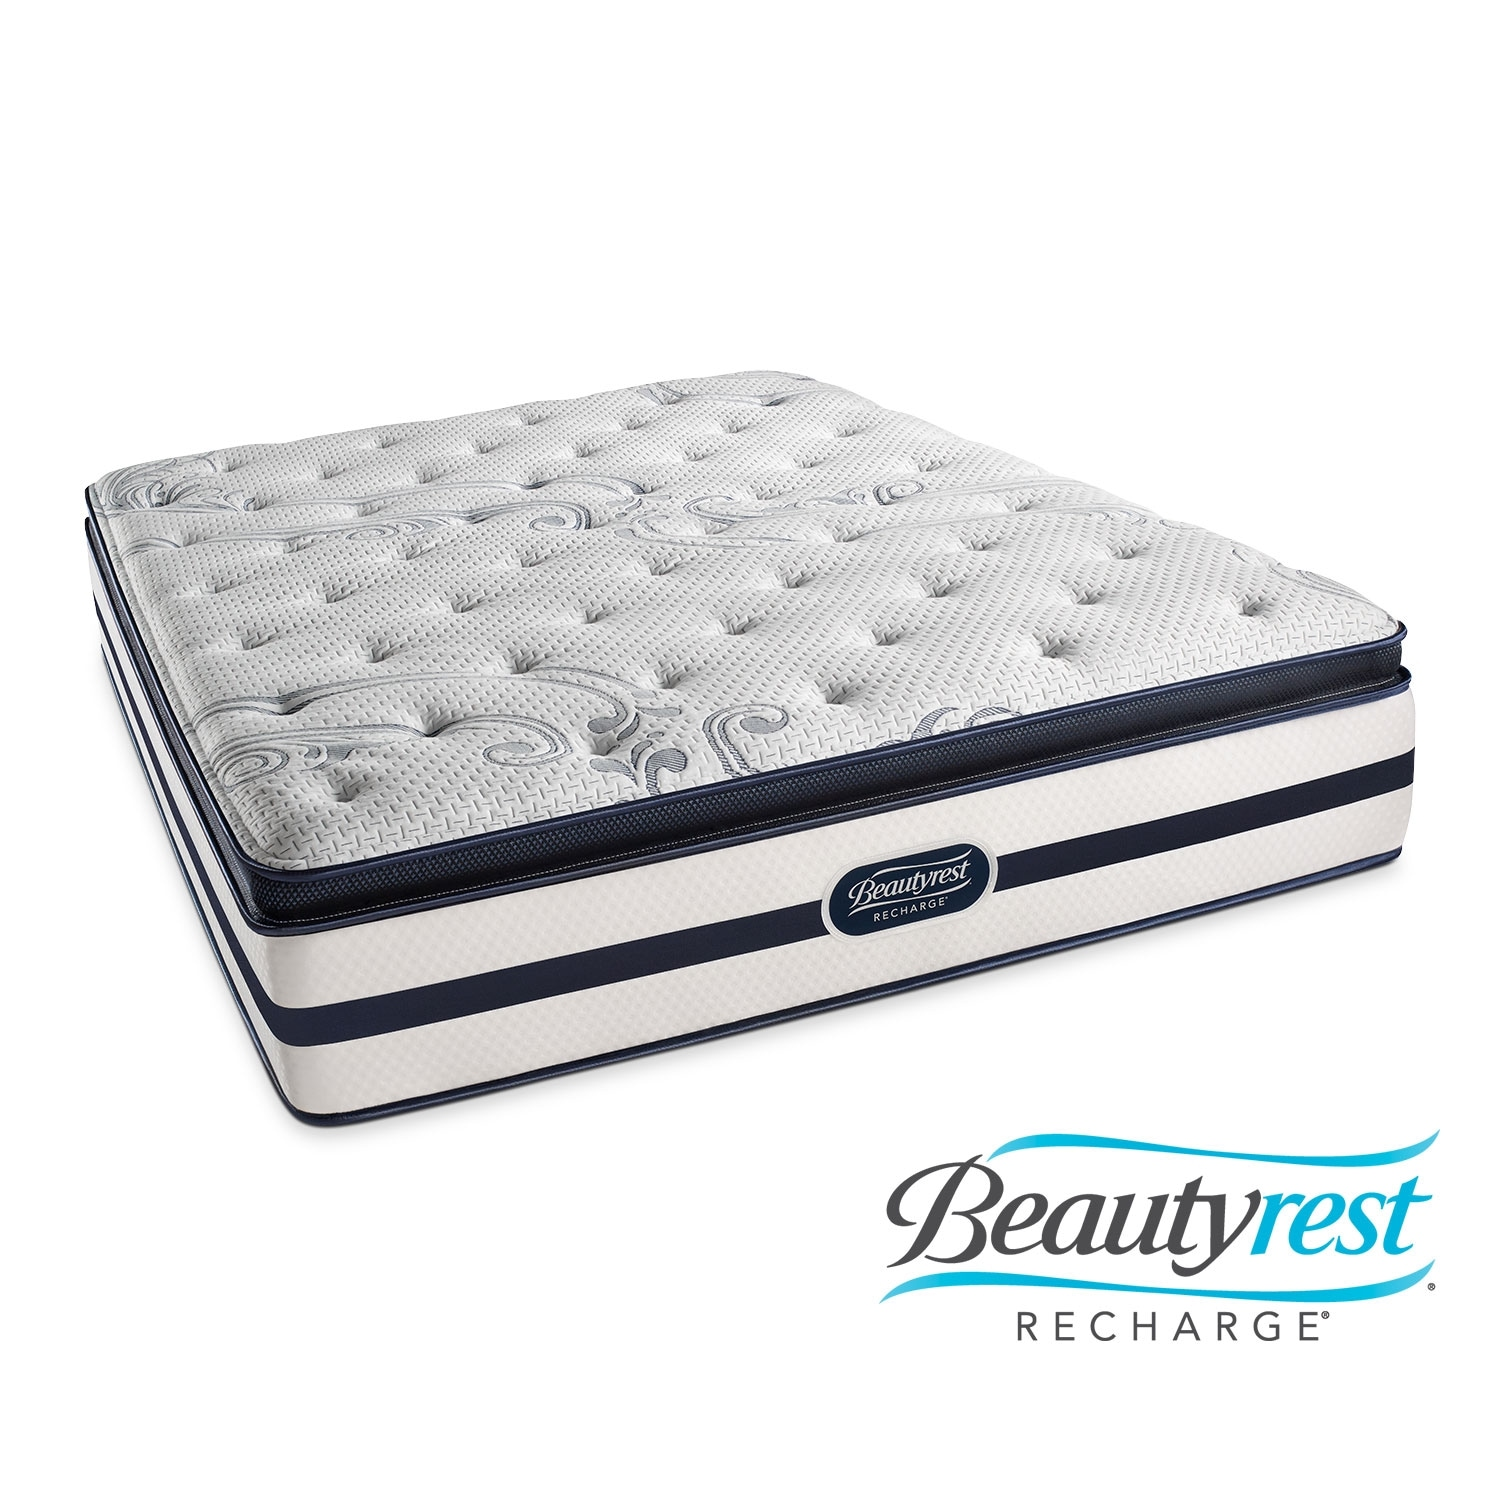 Mattresses and Bedding - Alisa Plush PT King Mattress